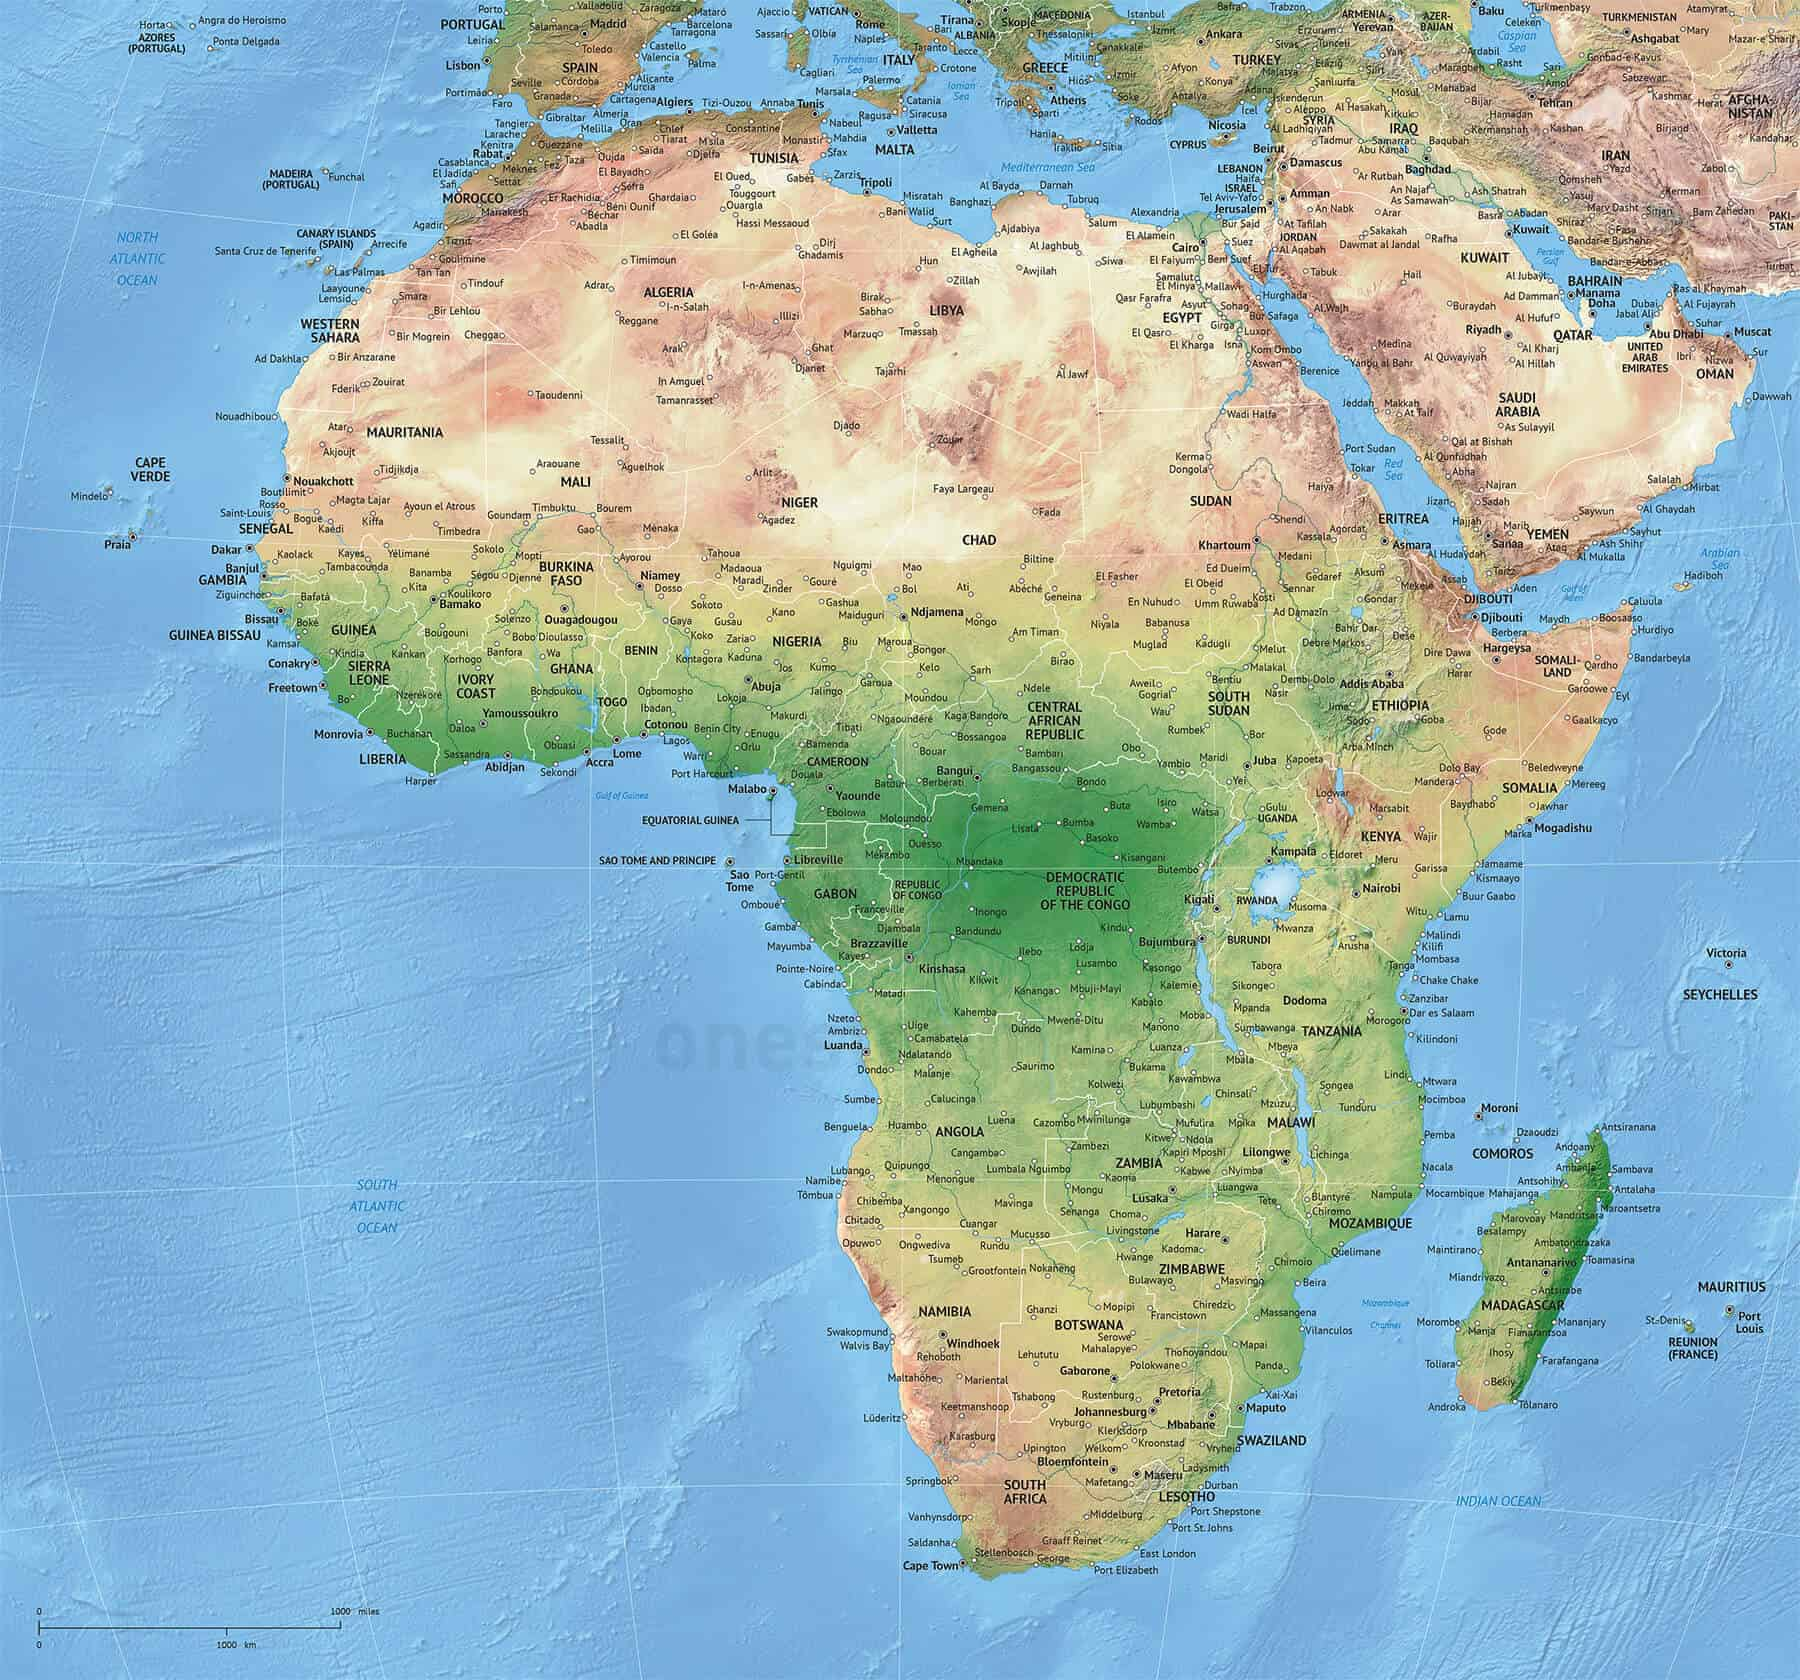 High detail political map of Africa with shaded relief